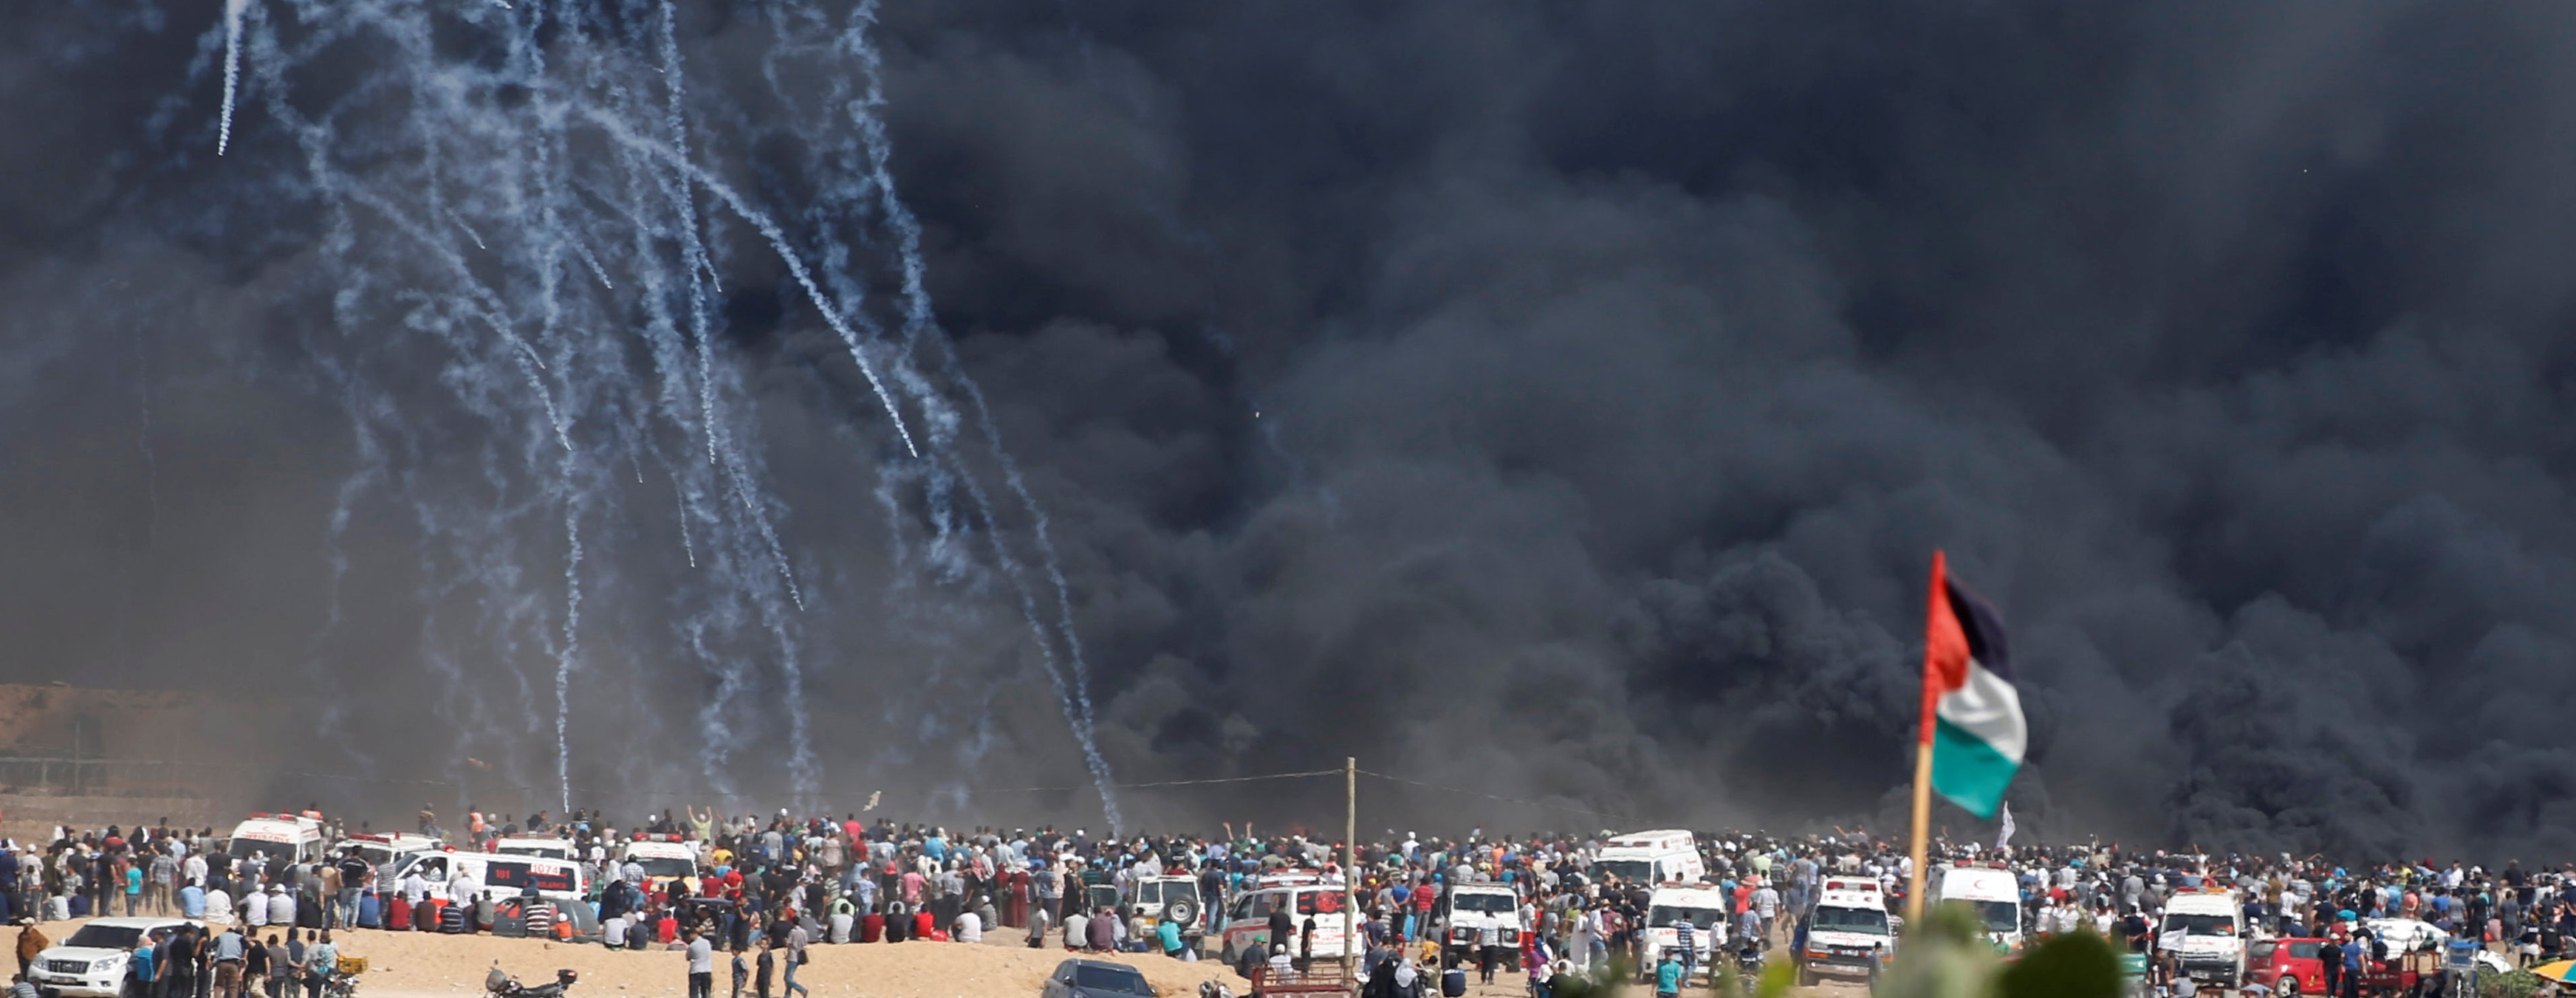 Israel's 'War Crimes': UN's Damning Report on the 2018 Gaza Protests